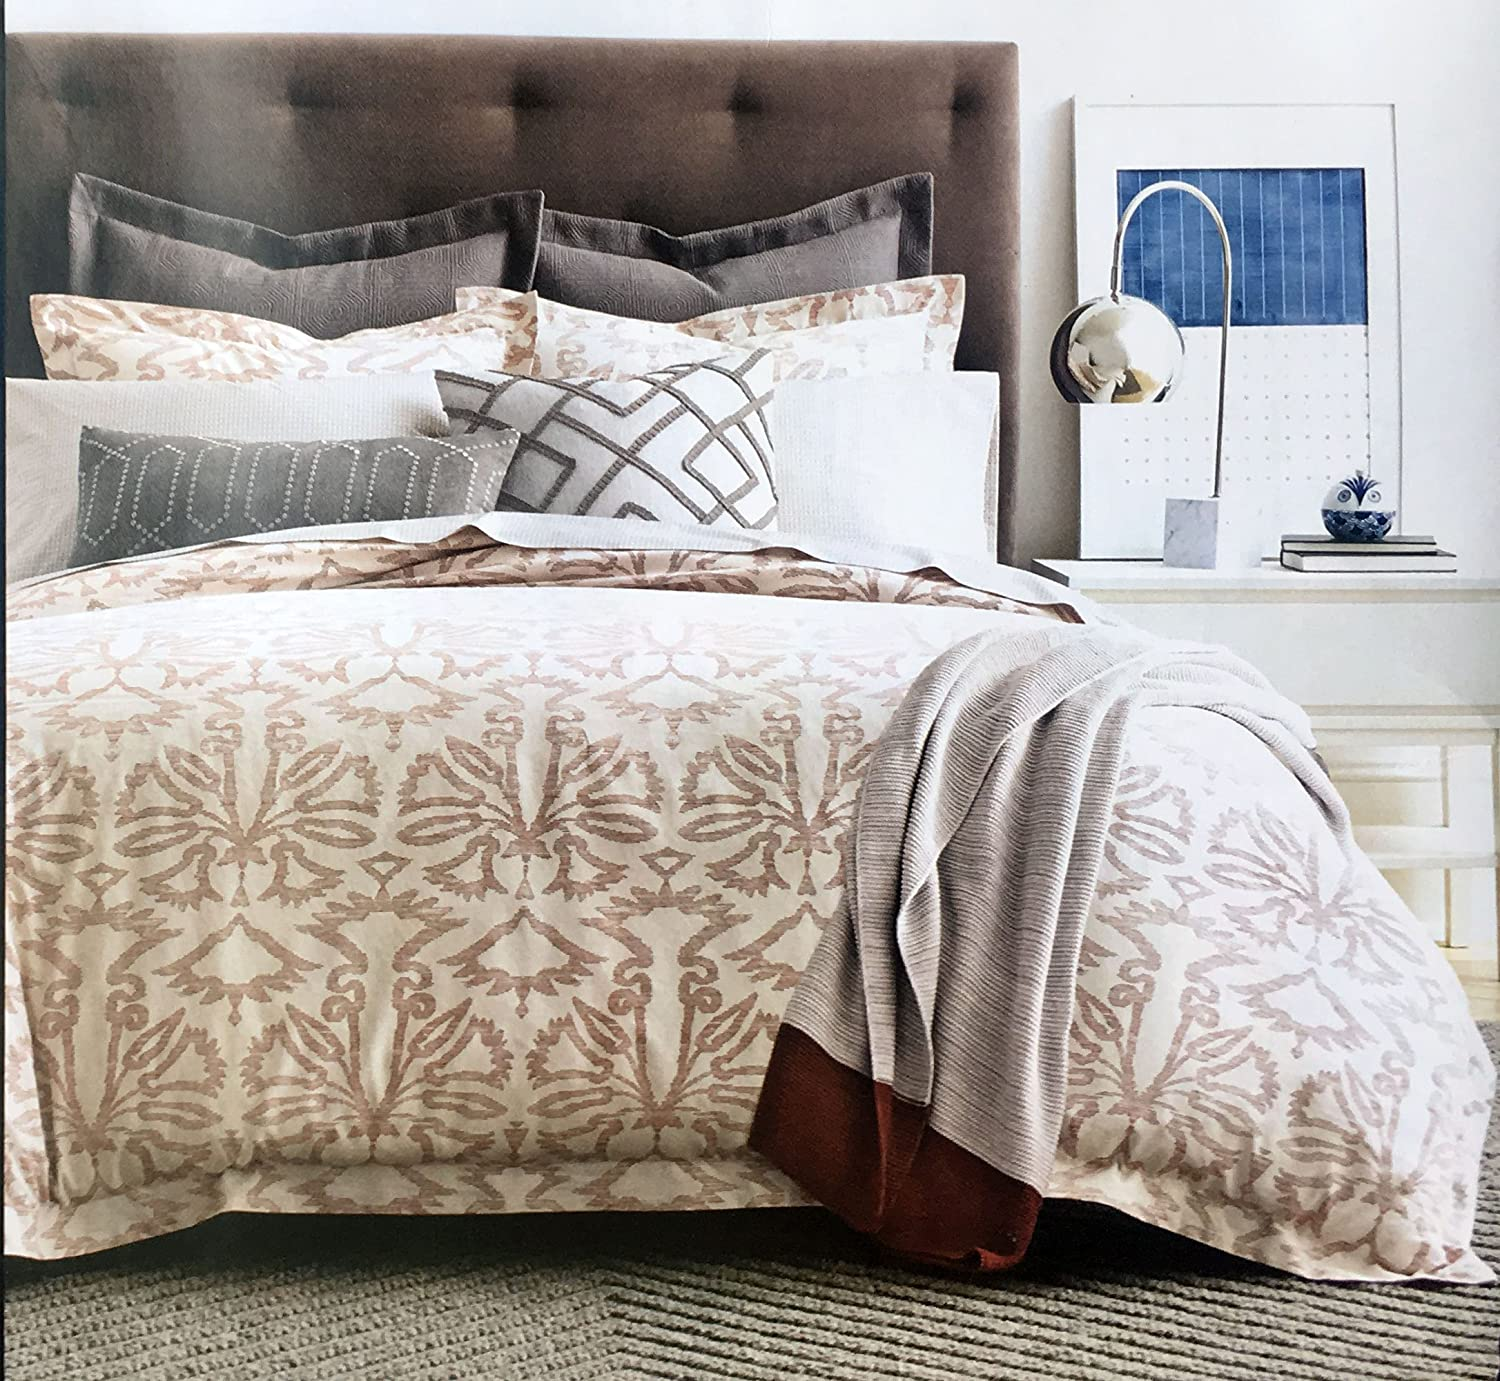 Currant Dwell Studio Luxury Cotton//Linen Blend Full//Queen Size Duvet Cover Geometric Floral Pattern in Red on a Tan//Beige Background Fontaine